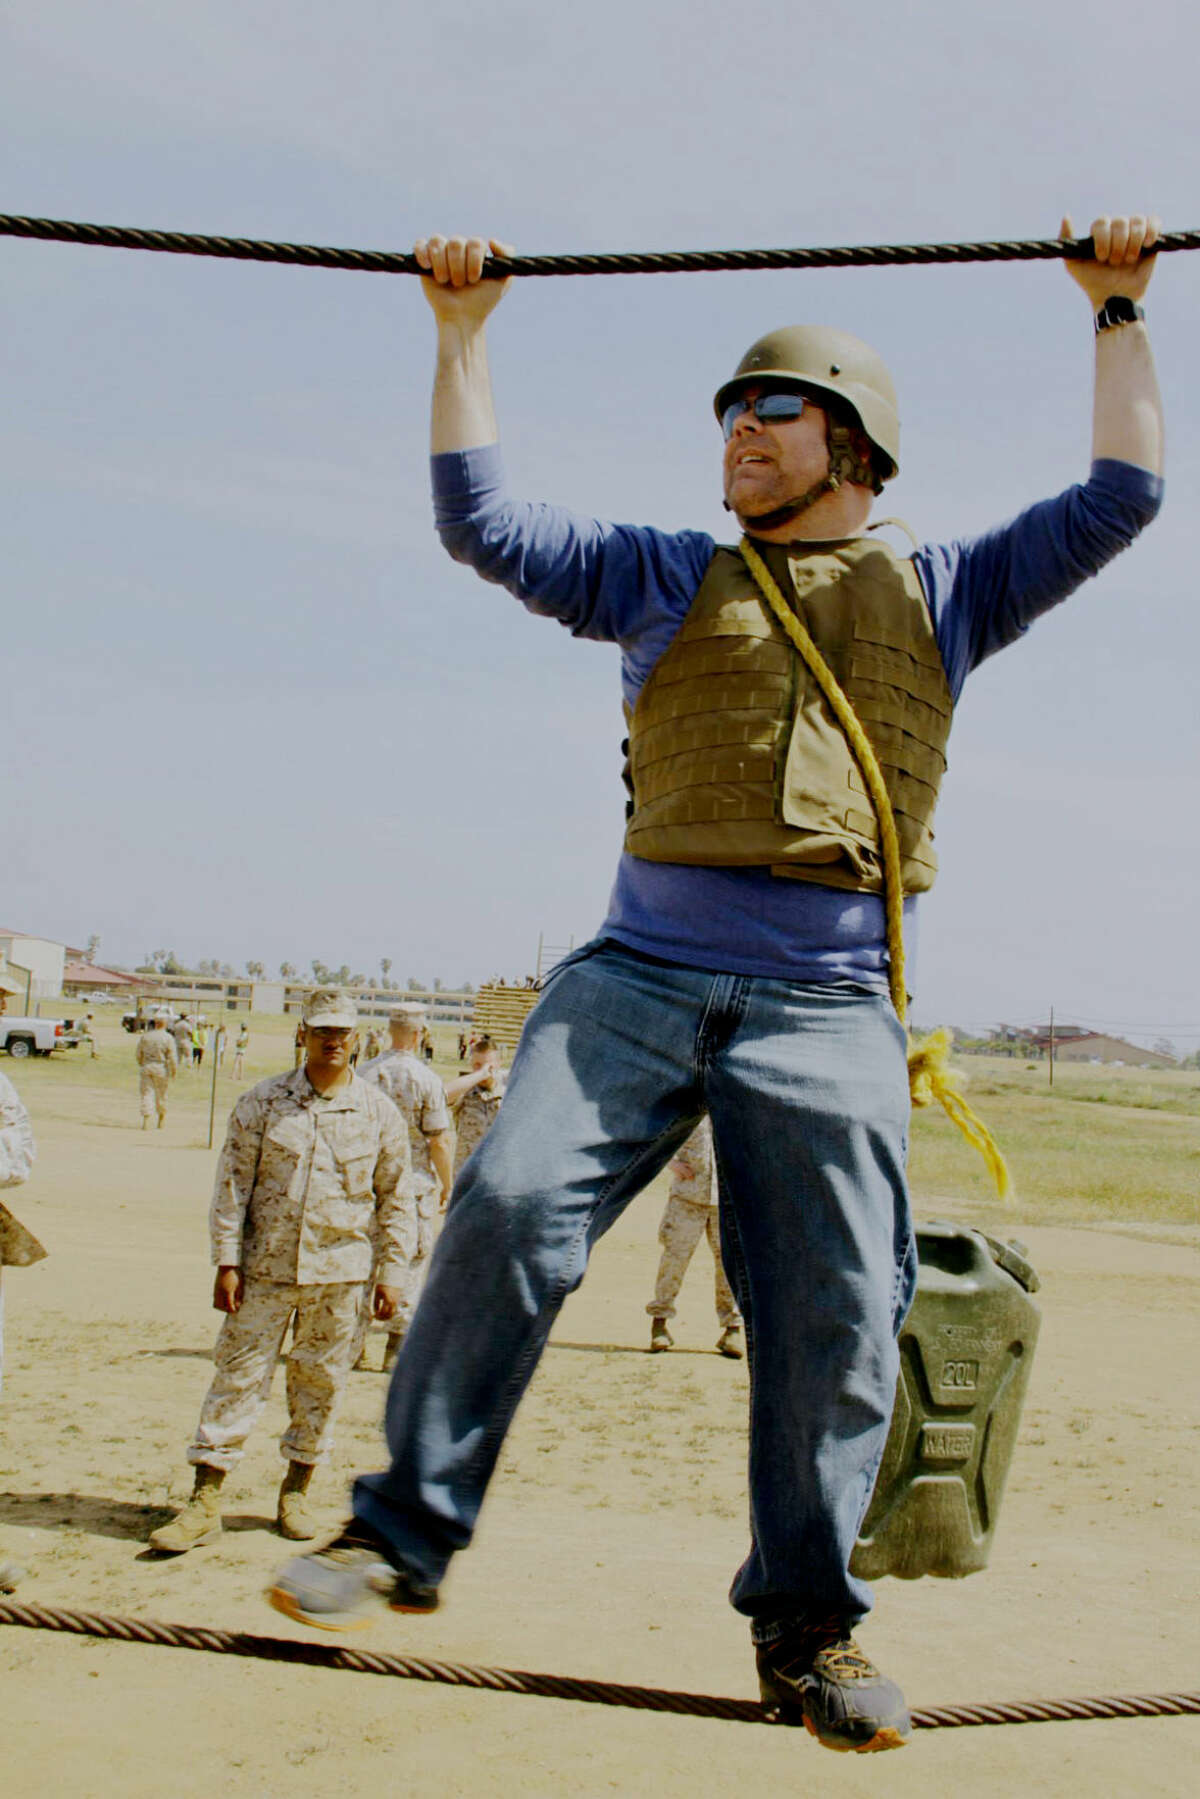 Daily News reporter Matthew Woods crosses a cable obstacle while at Camp Pendleton, north of San Diego, Calif.